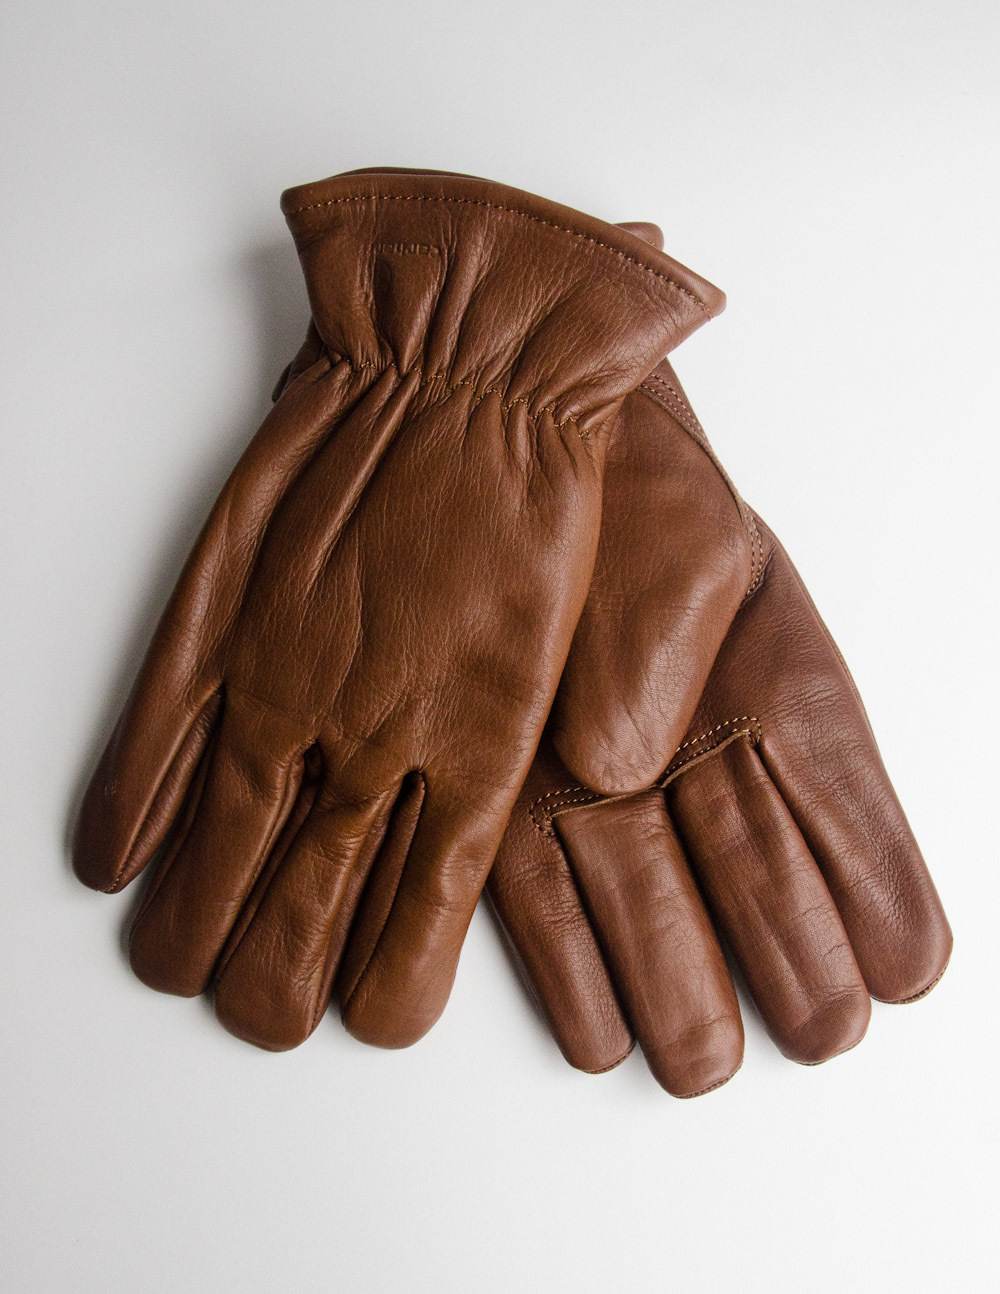 premium-picks-gloves-2.jpg